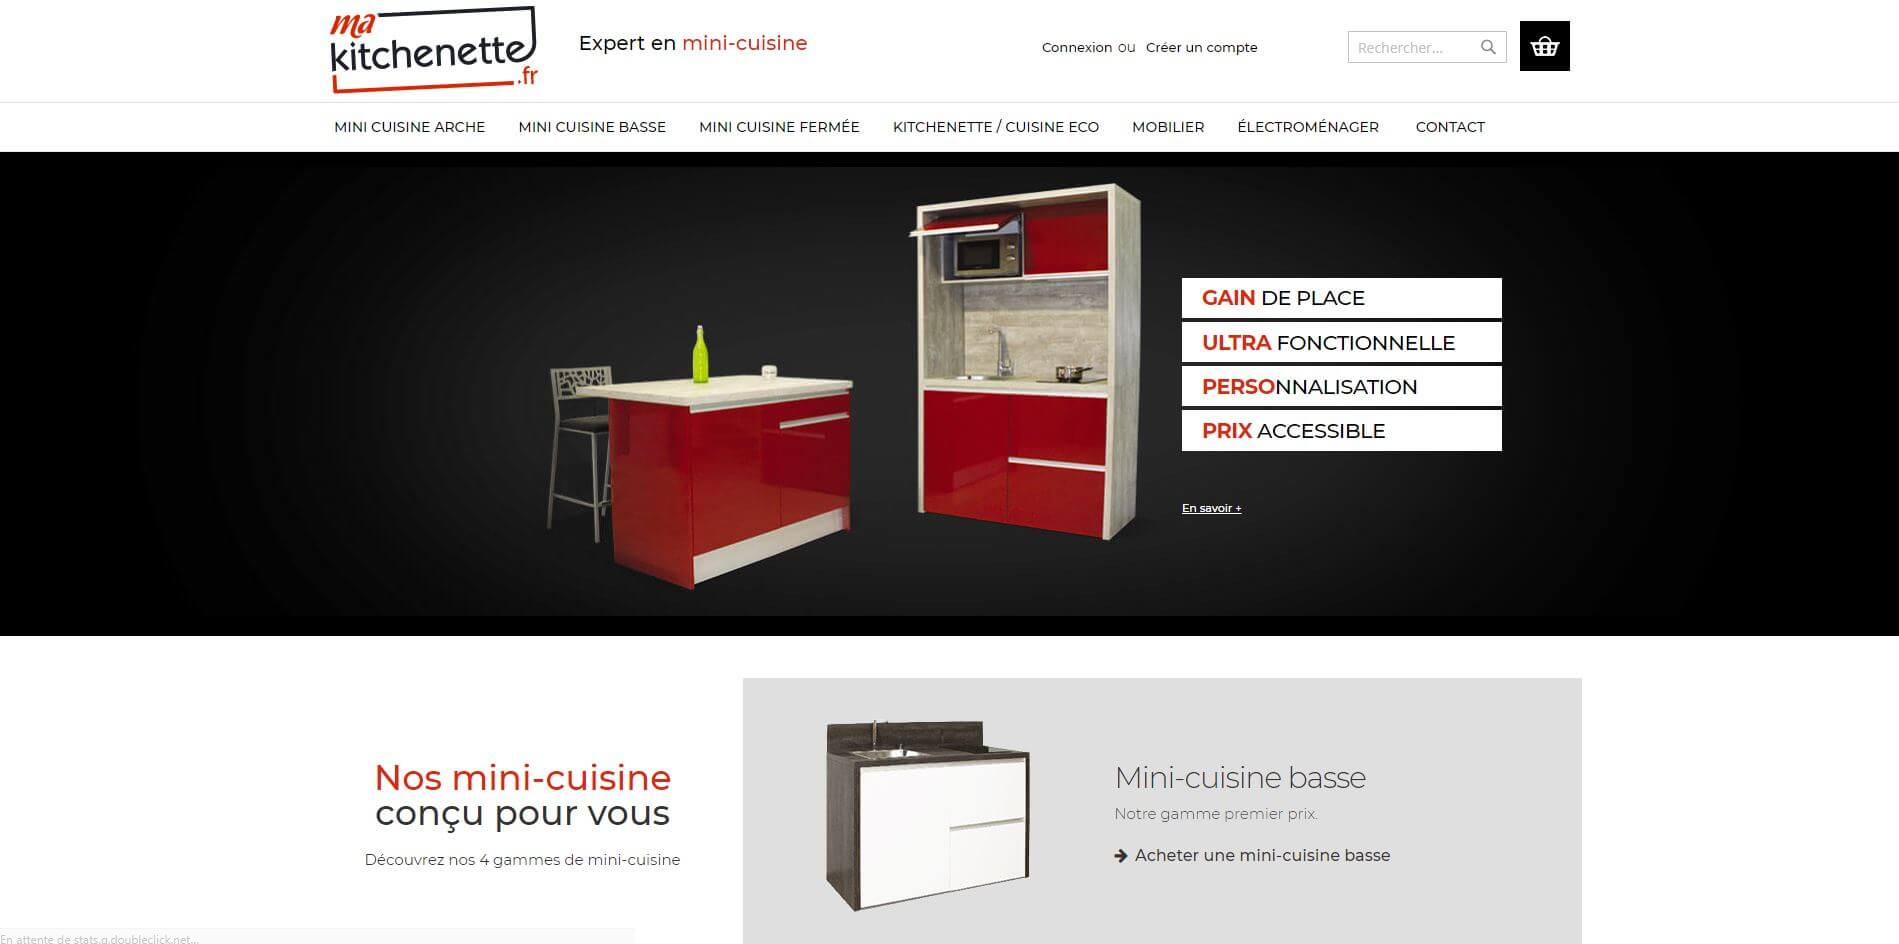 makitchenette-homepage